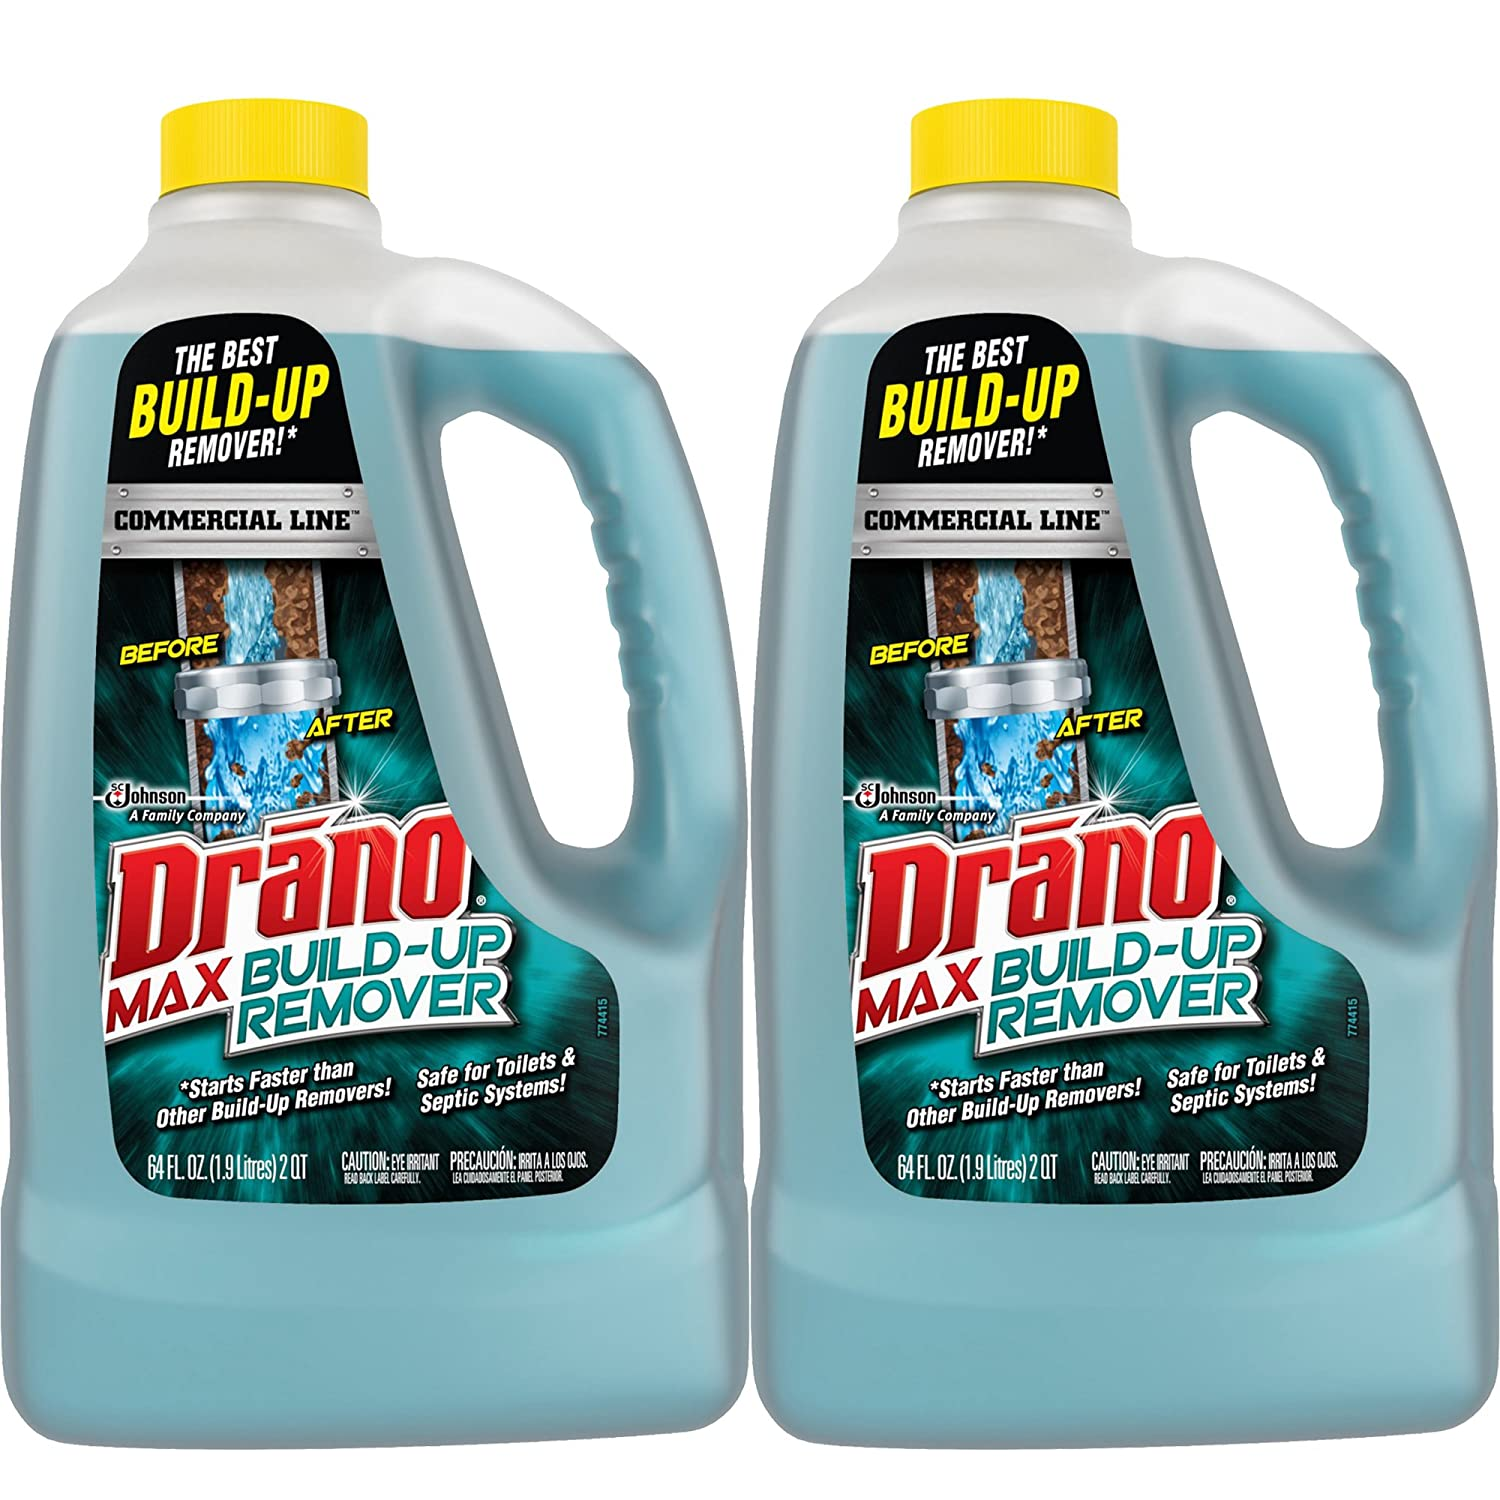 Amazon.com: Drano Commercial Line Max Build-Up Remover 64 Ounces, 2 ...